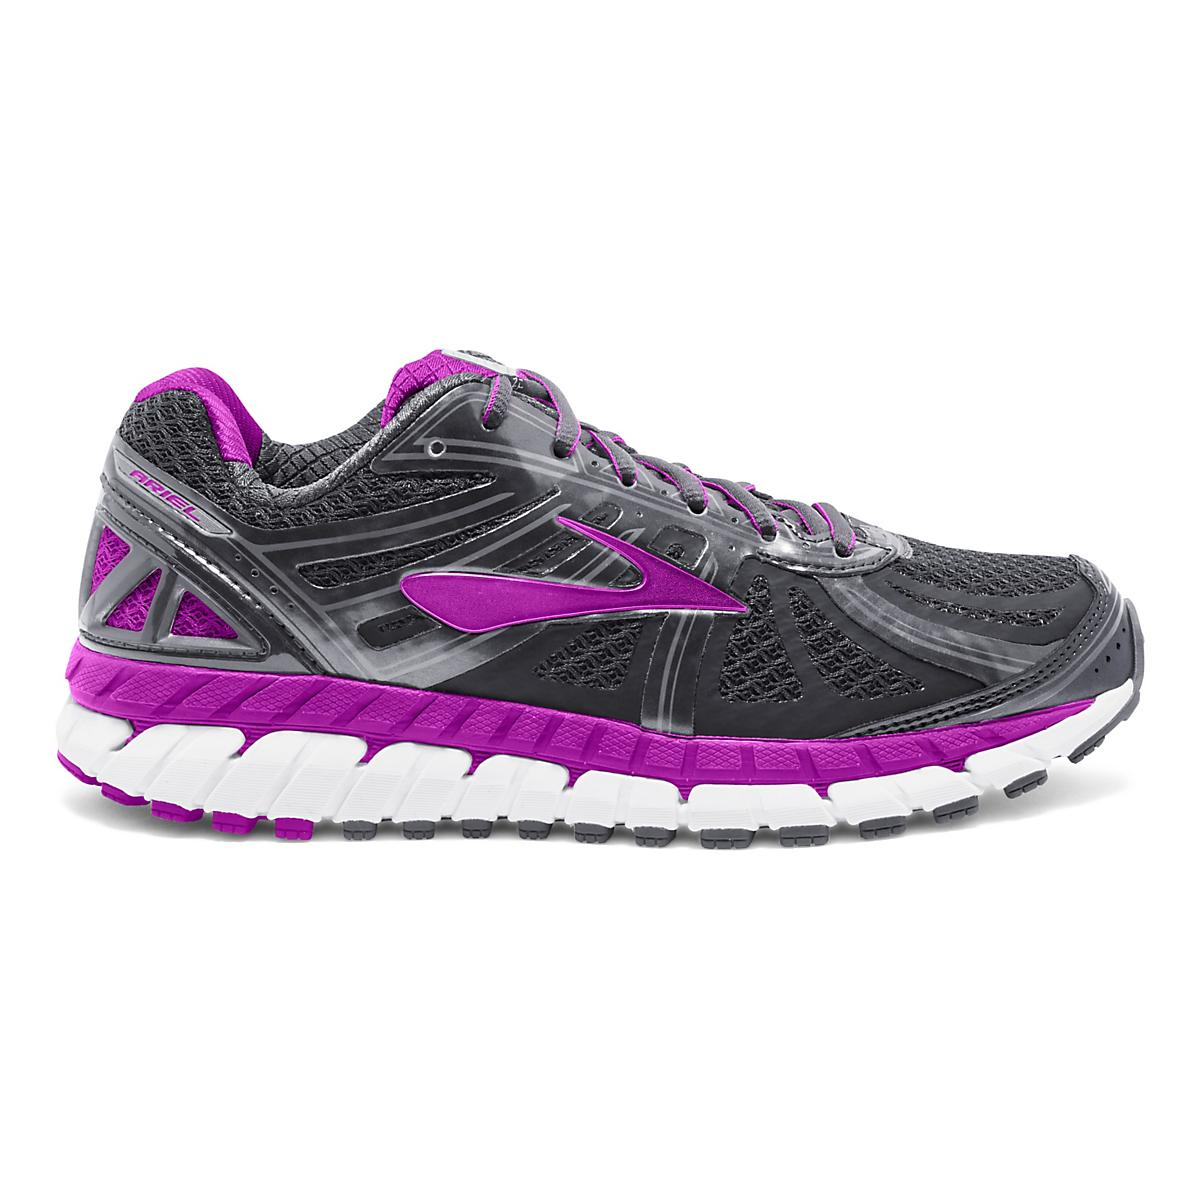 8deea307afd Brooks Ariel 16 Running Shoes for Women from Road Runner Sports